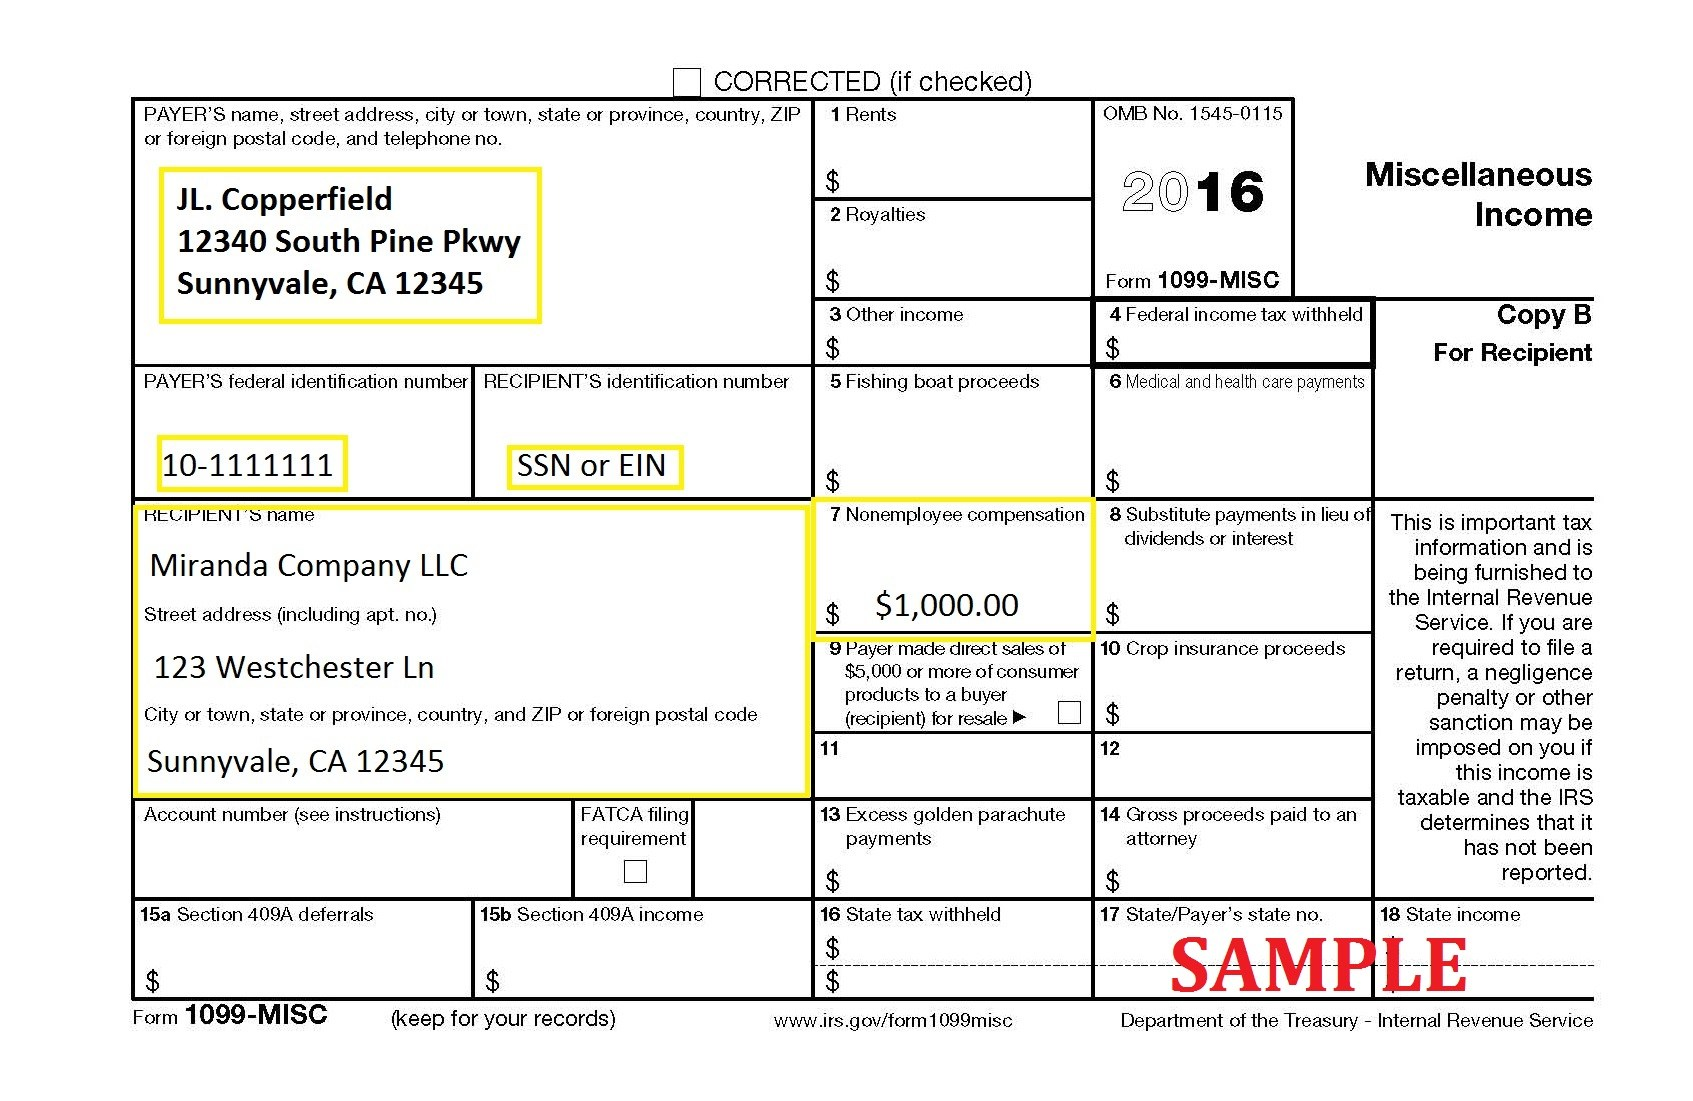 Irs Tax Form Misc Instructions